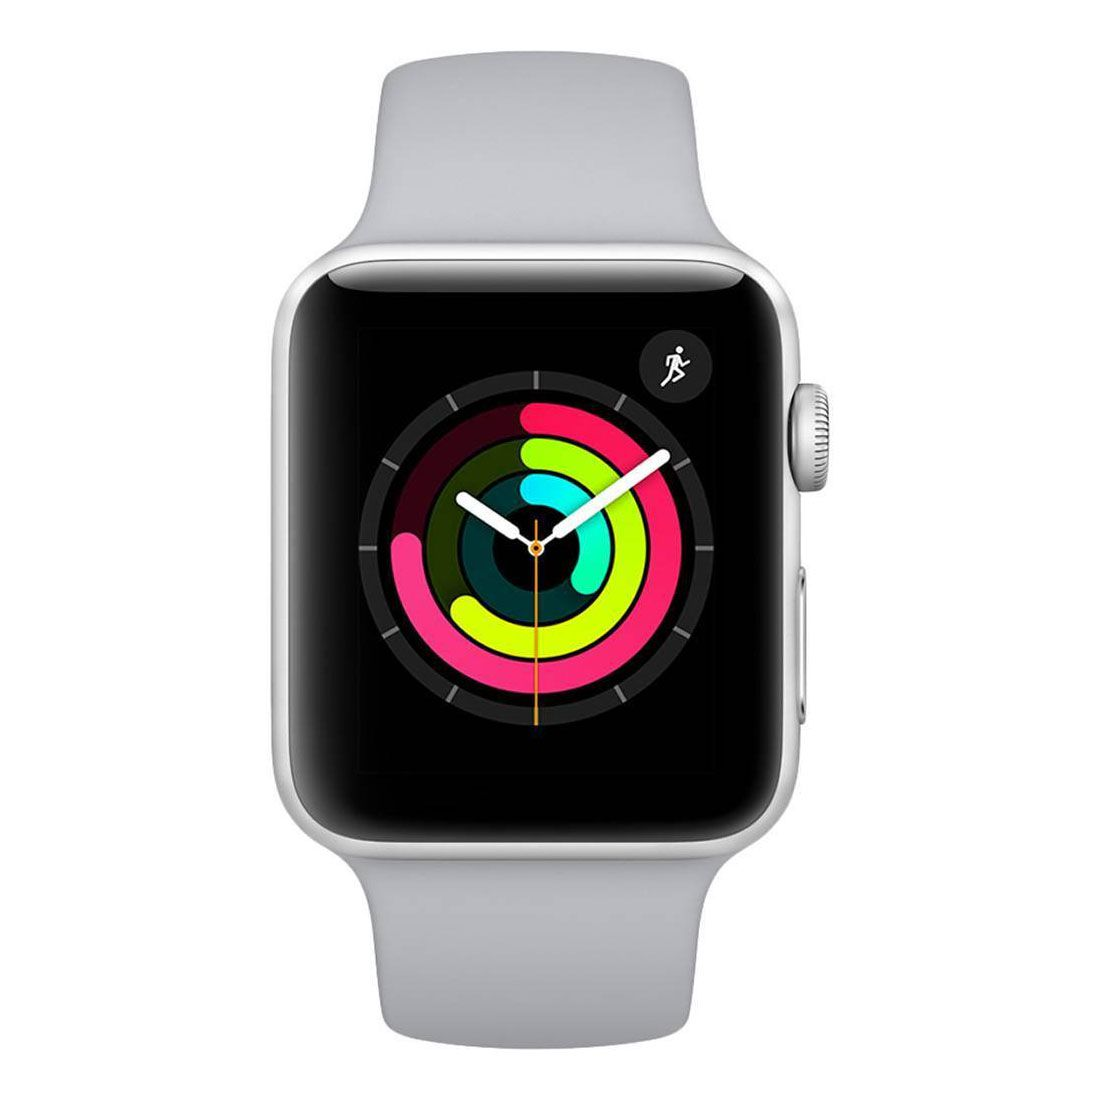 37223fd6566 Relogio Apple Watch 3 Silver Aluminum Fog Sport Band Gray 38mm - JP Import  ...